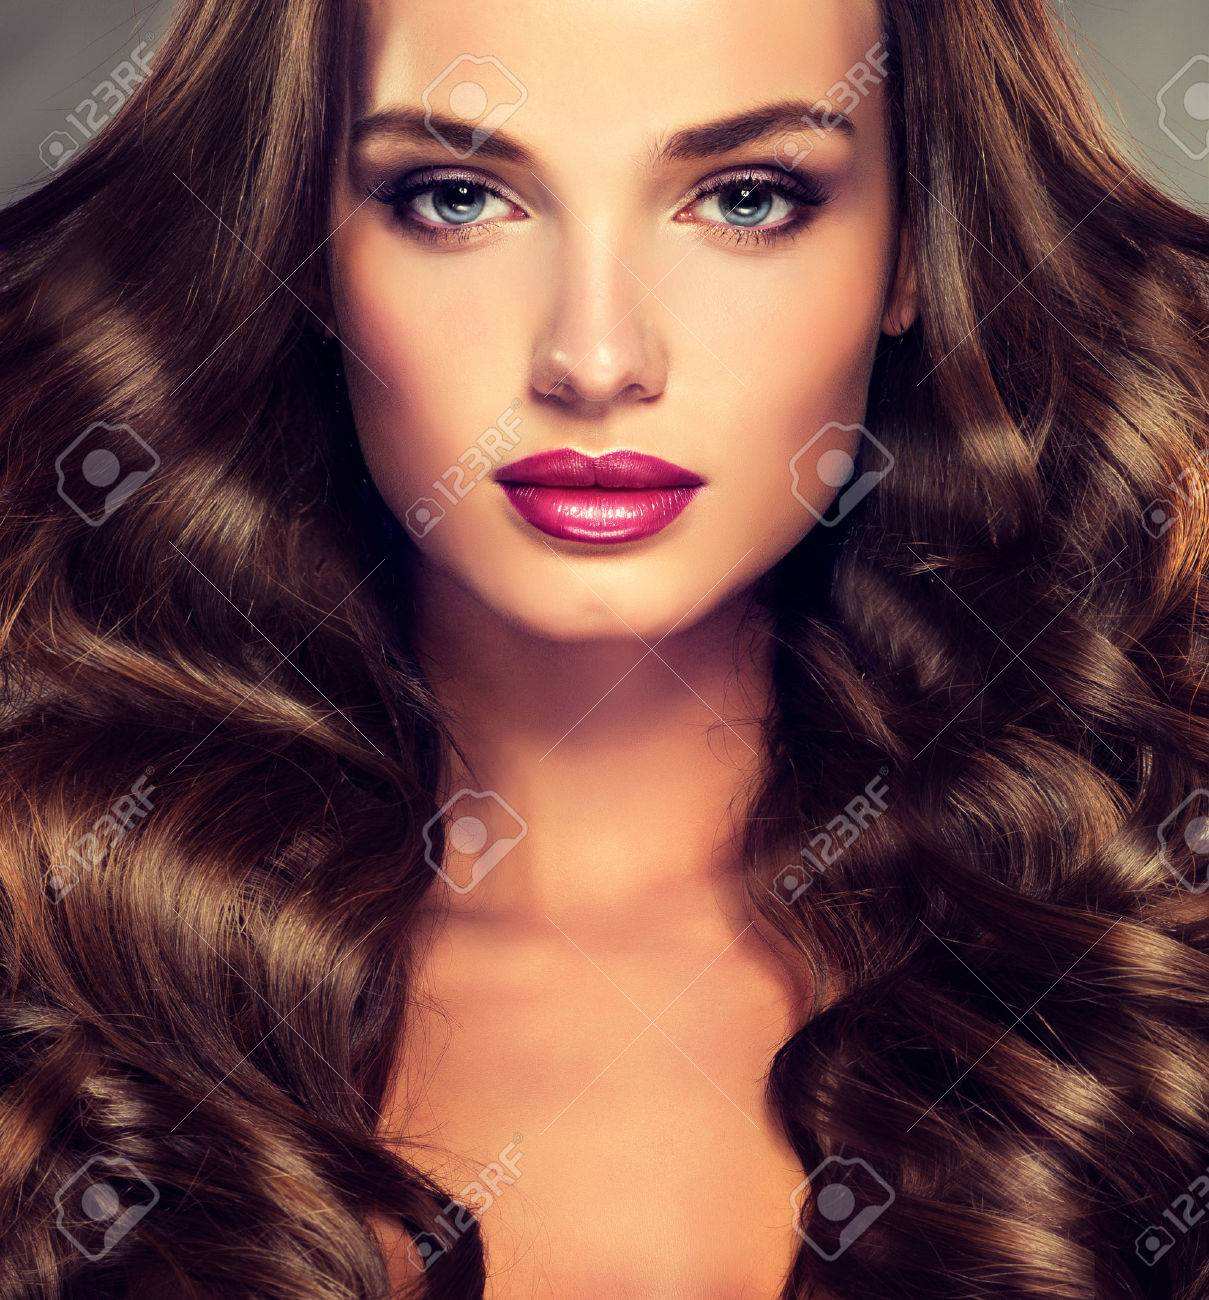 Indian Hair Style Stock Photos. Royalty Free Indian Hair Style Images